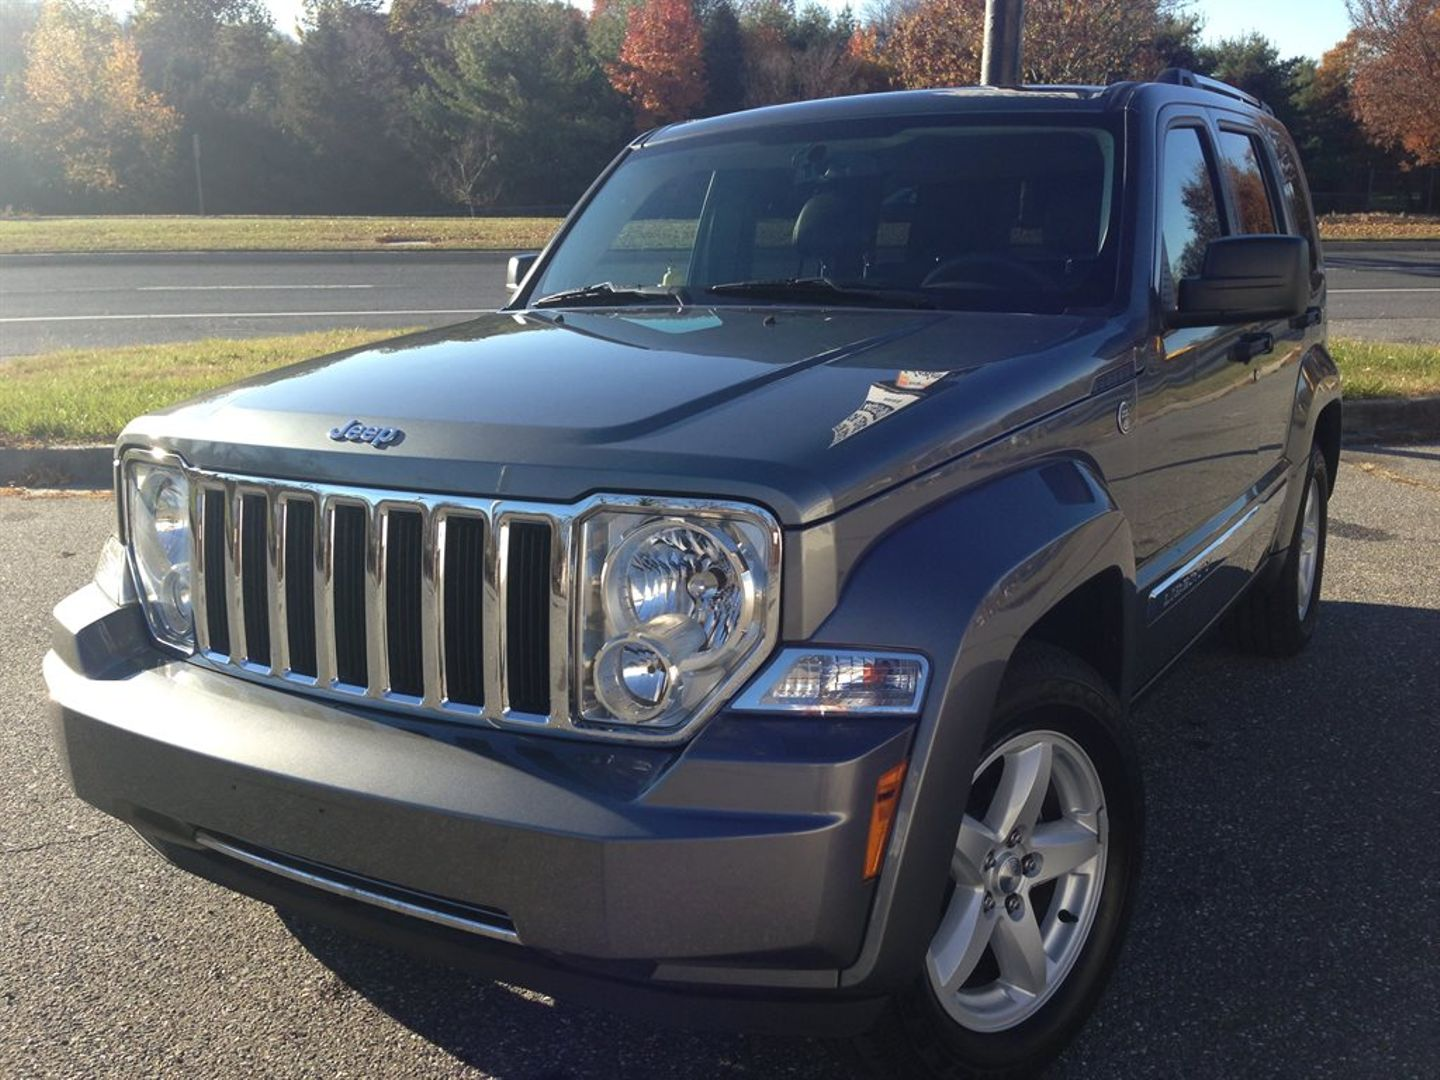 Used Jeep Liberty for Sale Glen Burnie, Maryland.